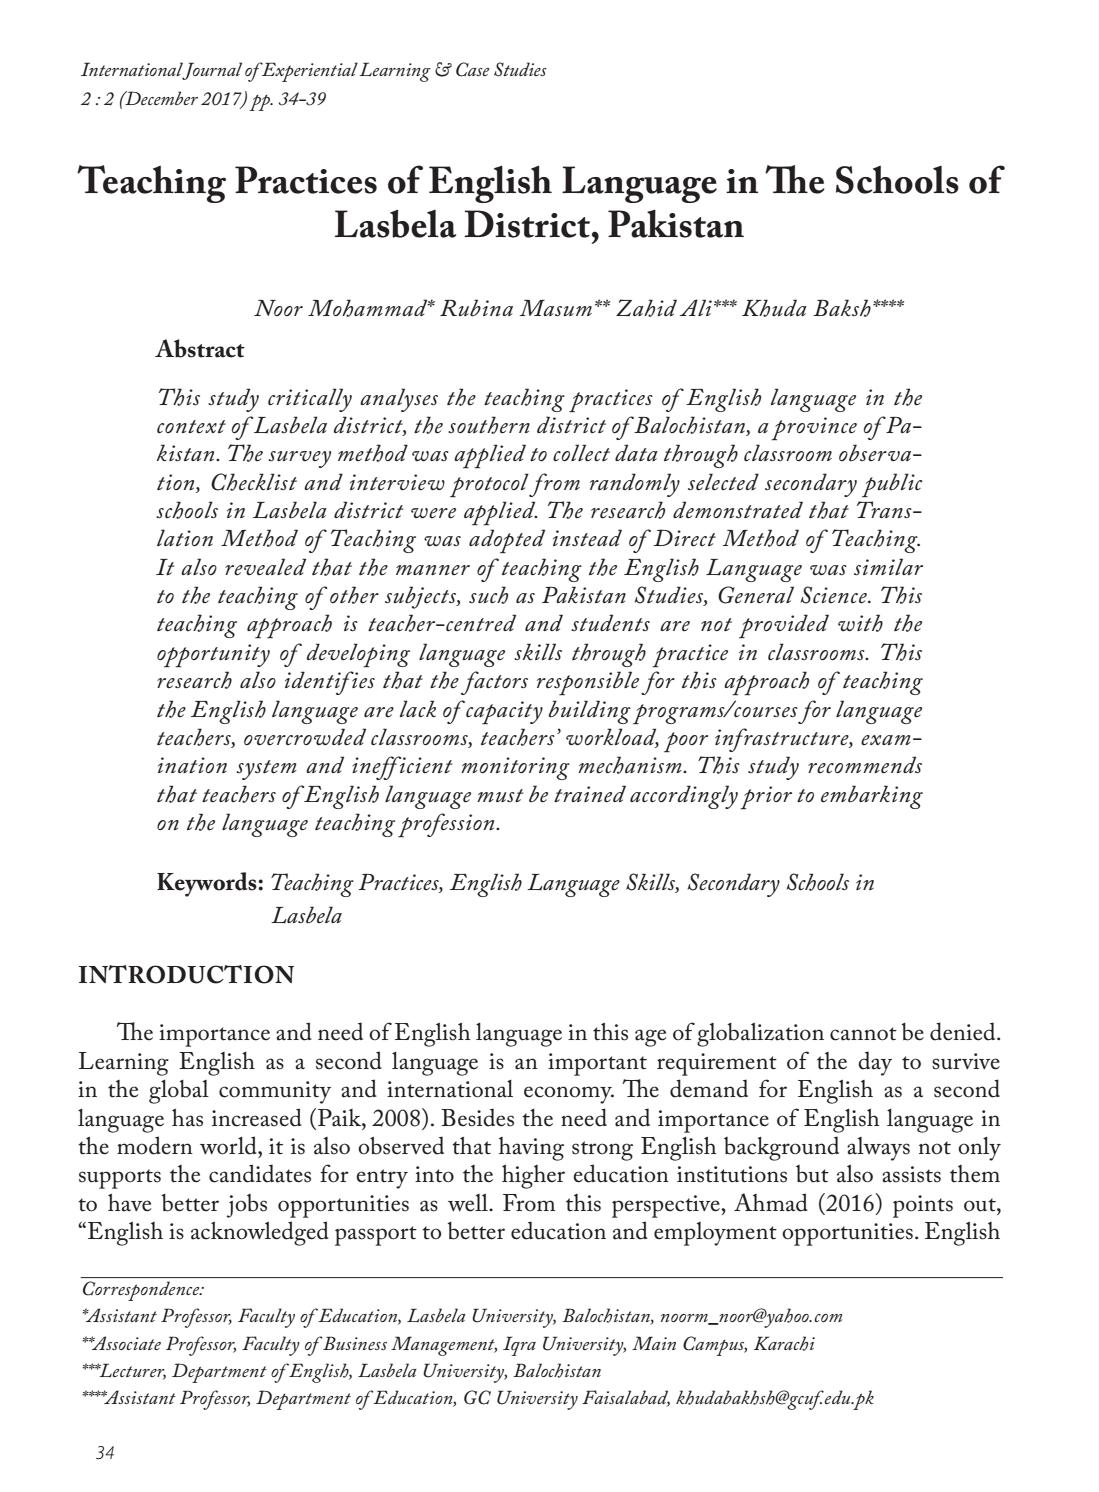 Teaching Practices of English Language in The Schools of